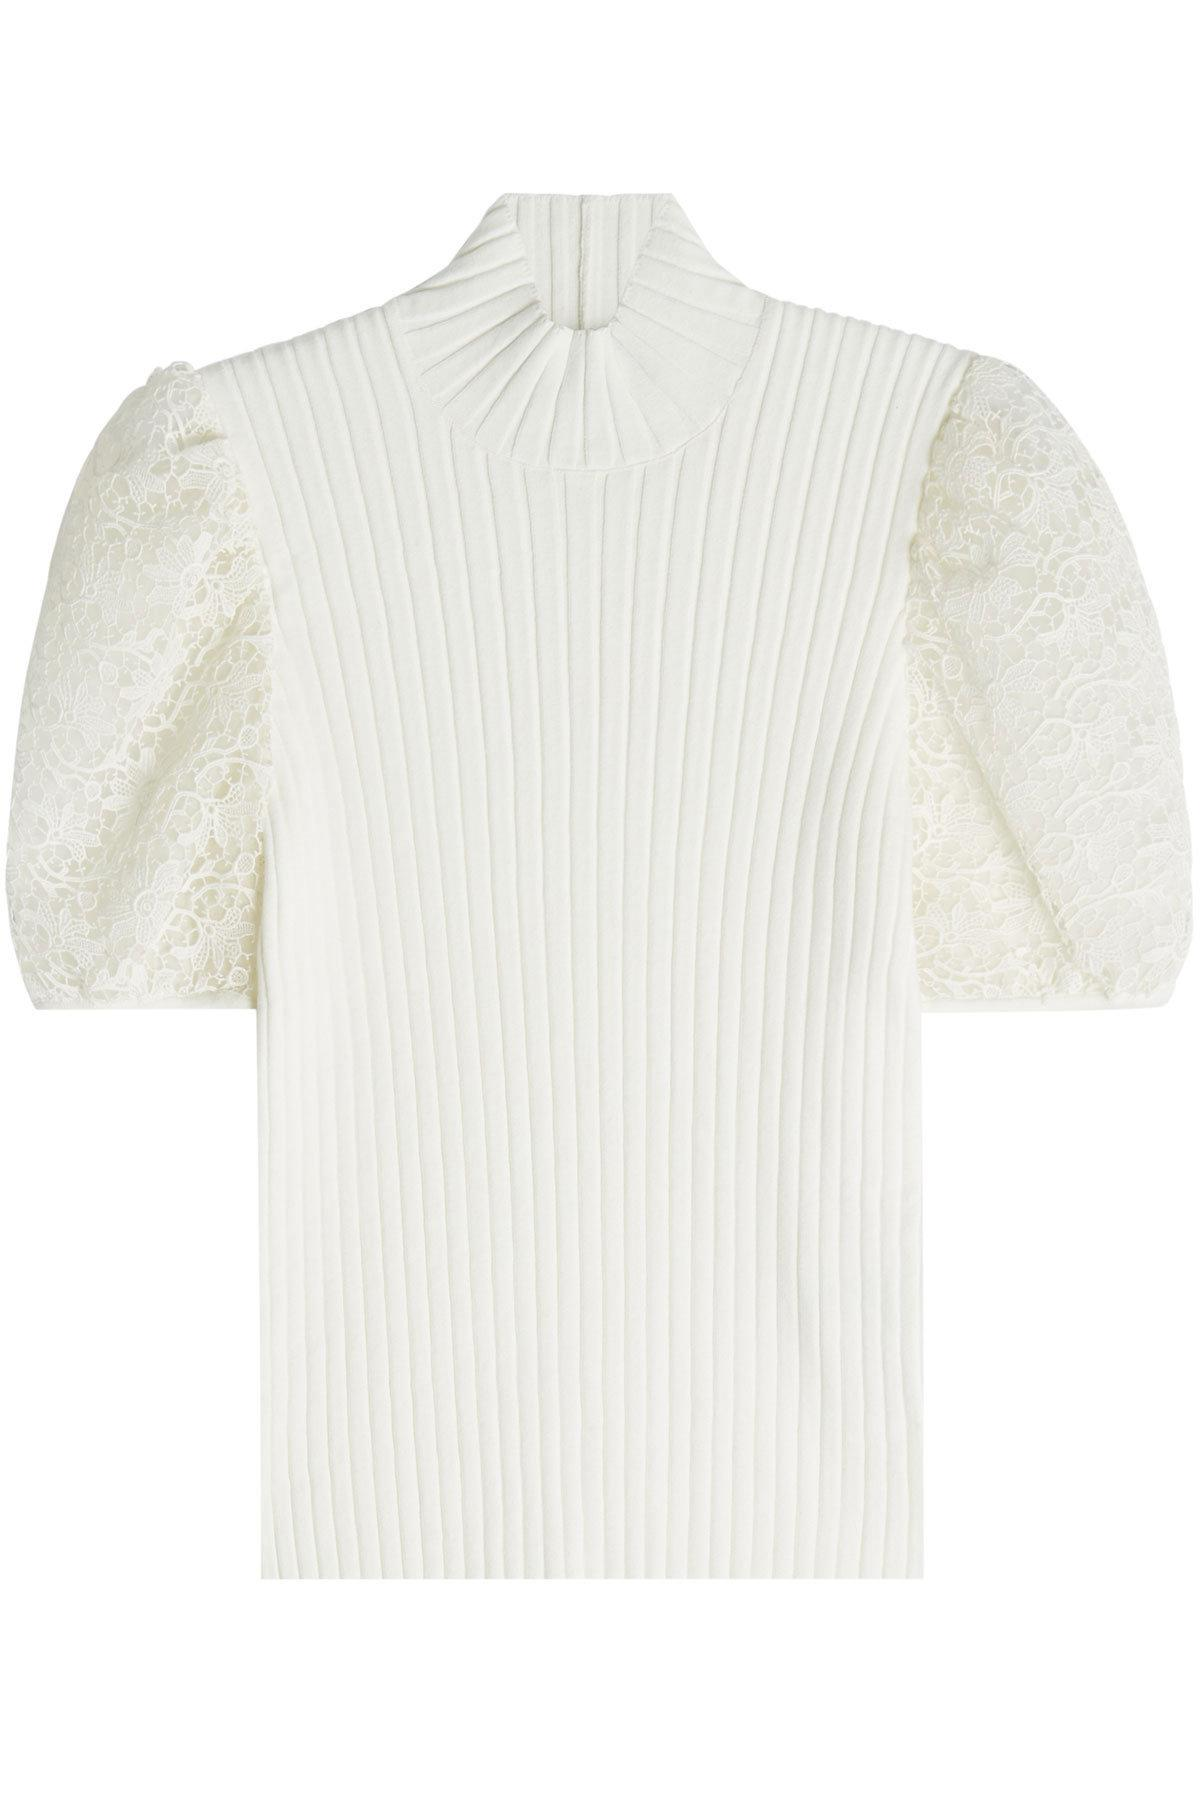 Giambattista Valli Top With Lace Sleeves In White